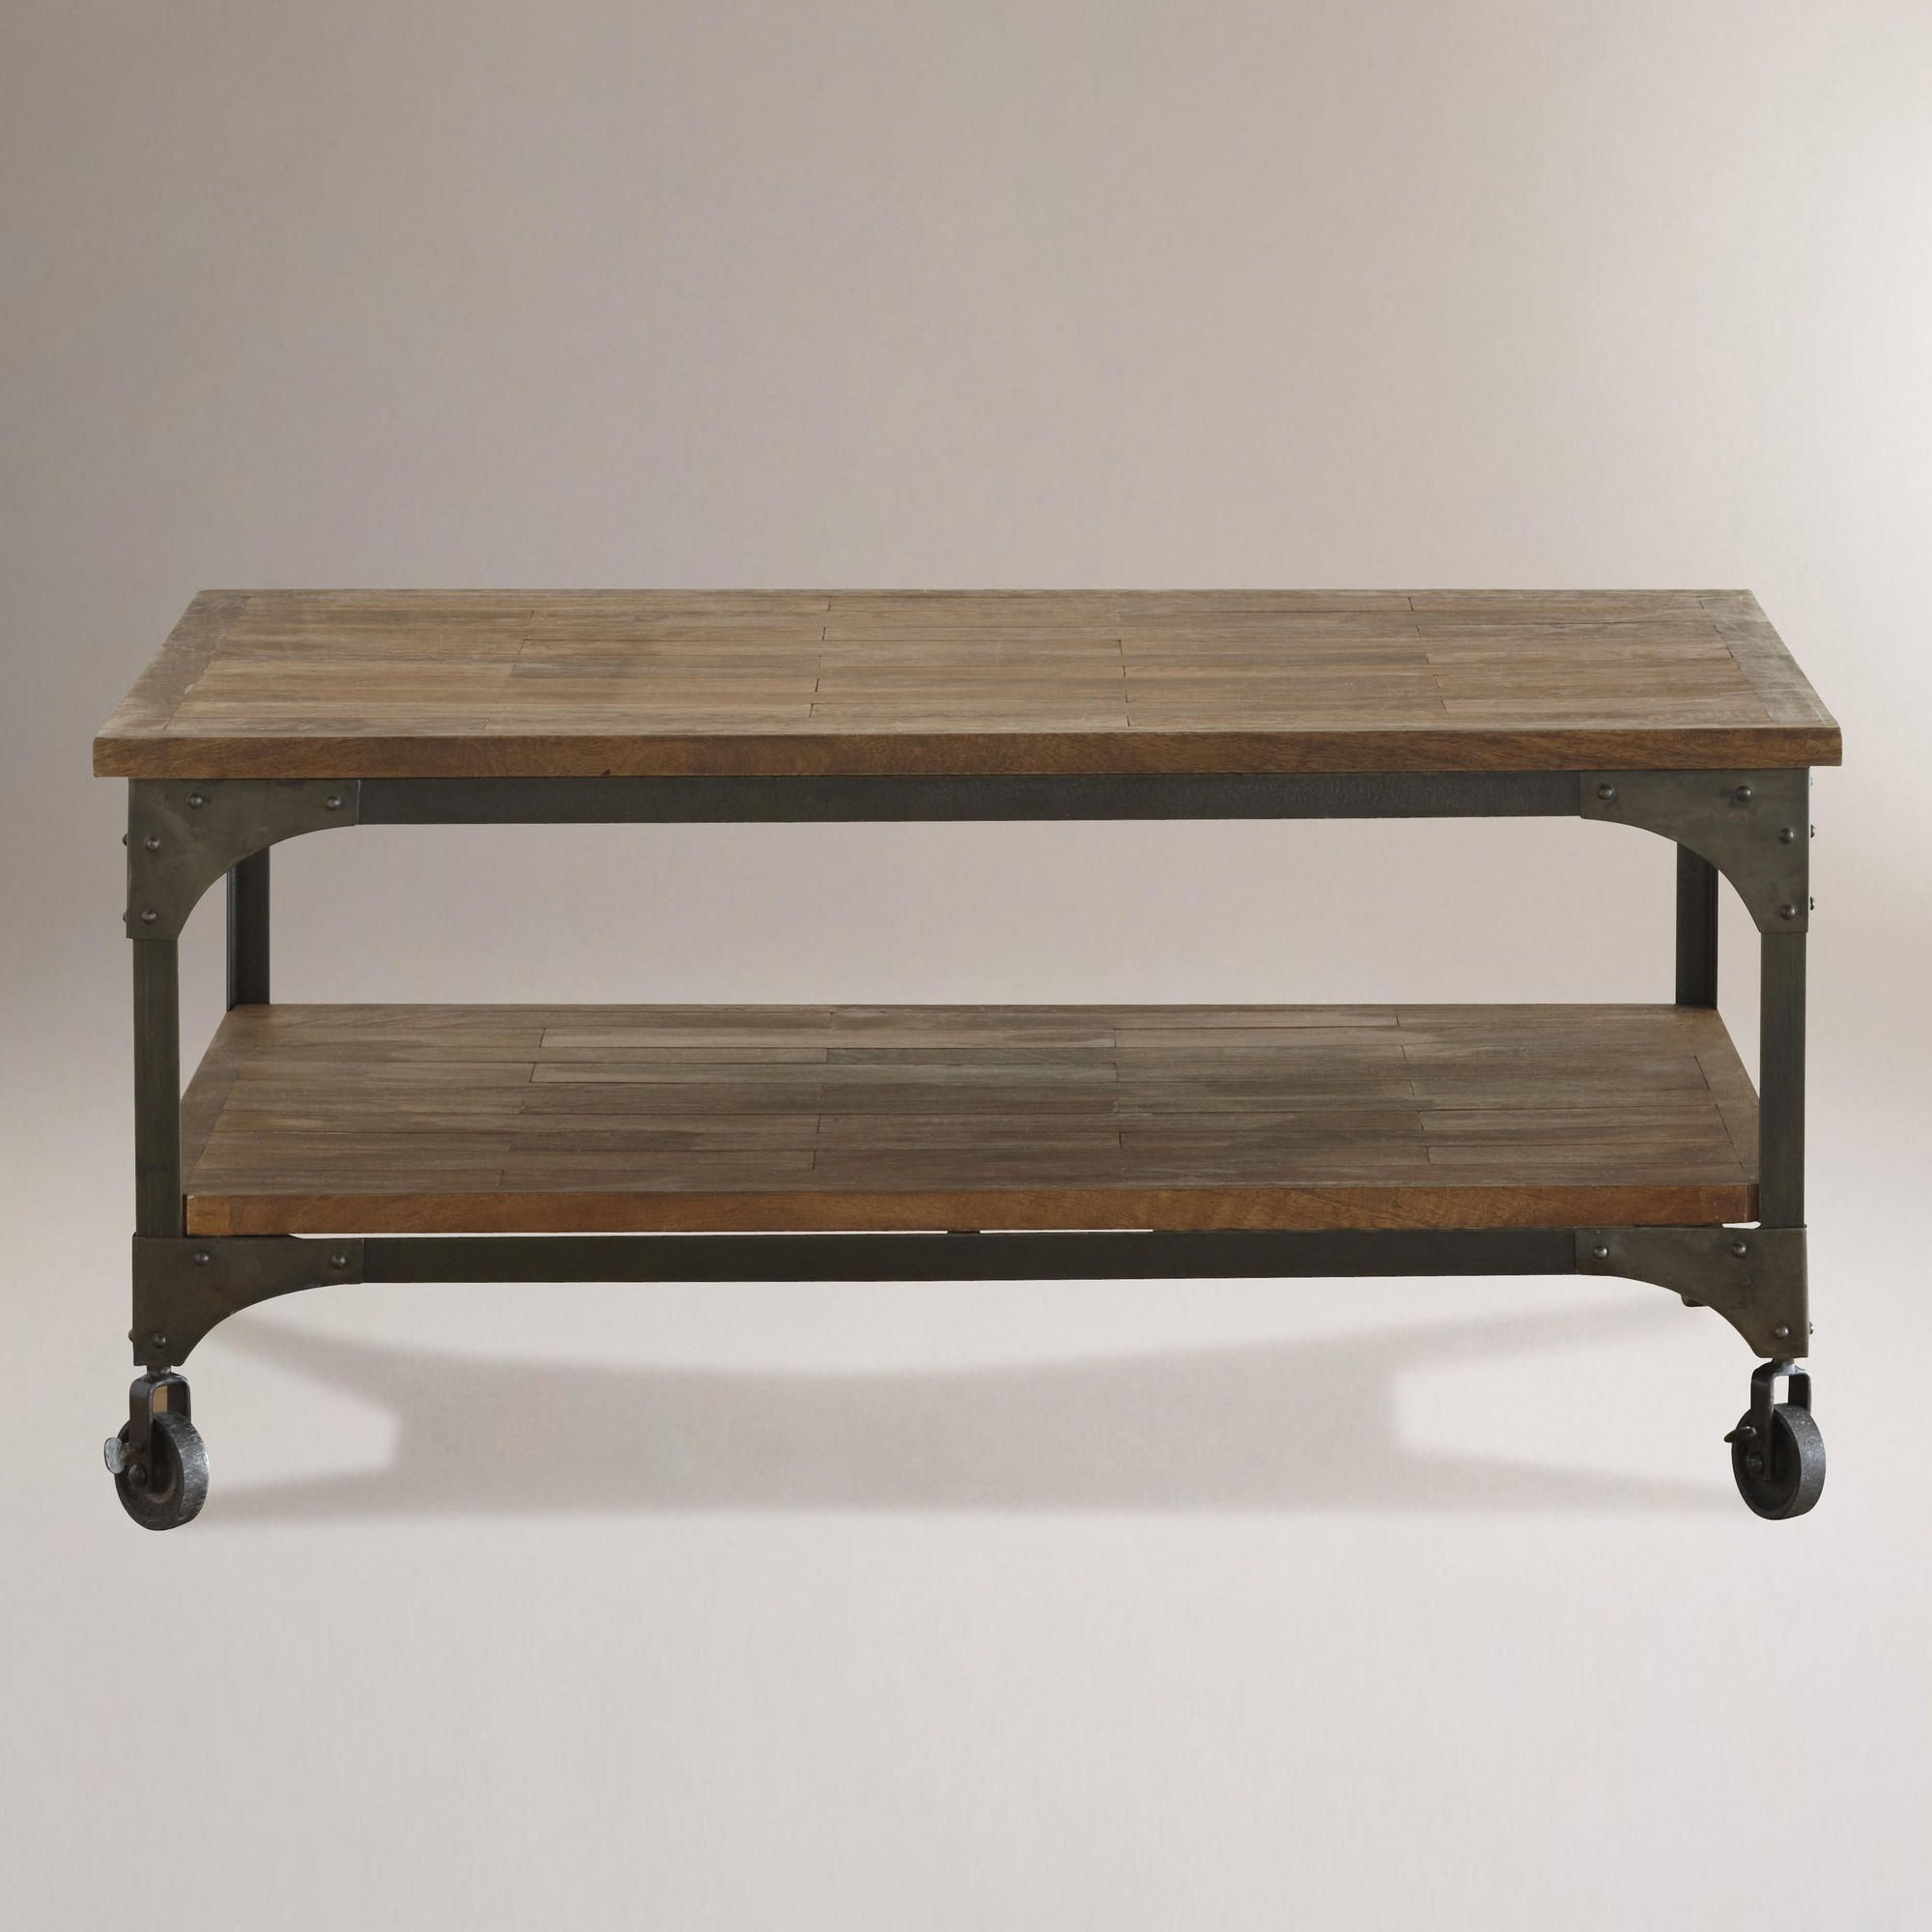 Aiden Coffee Table 289 99 Now 229 99 Cost Plus World